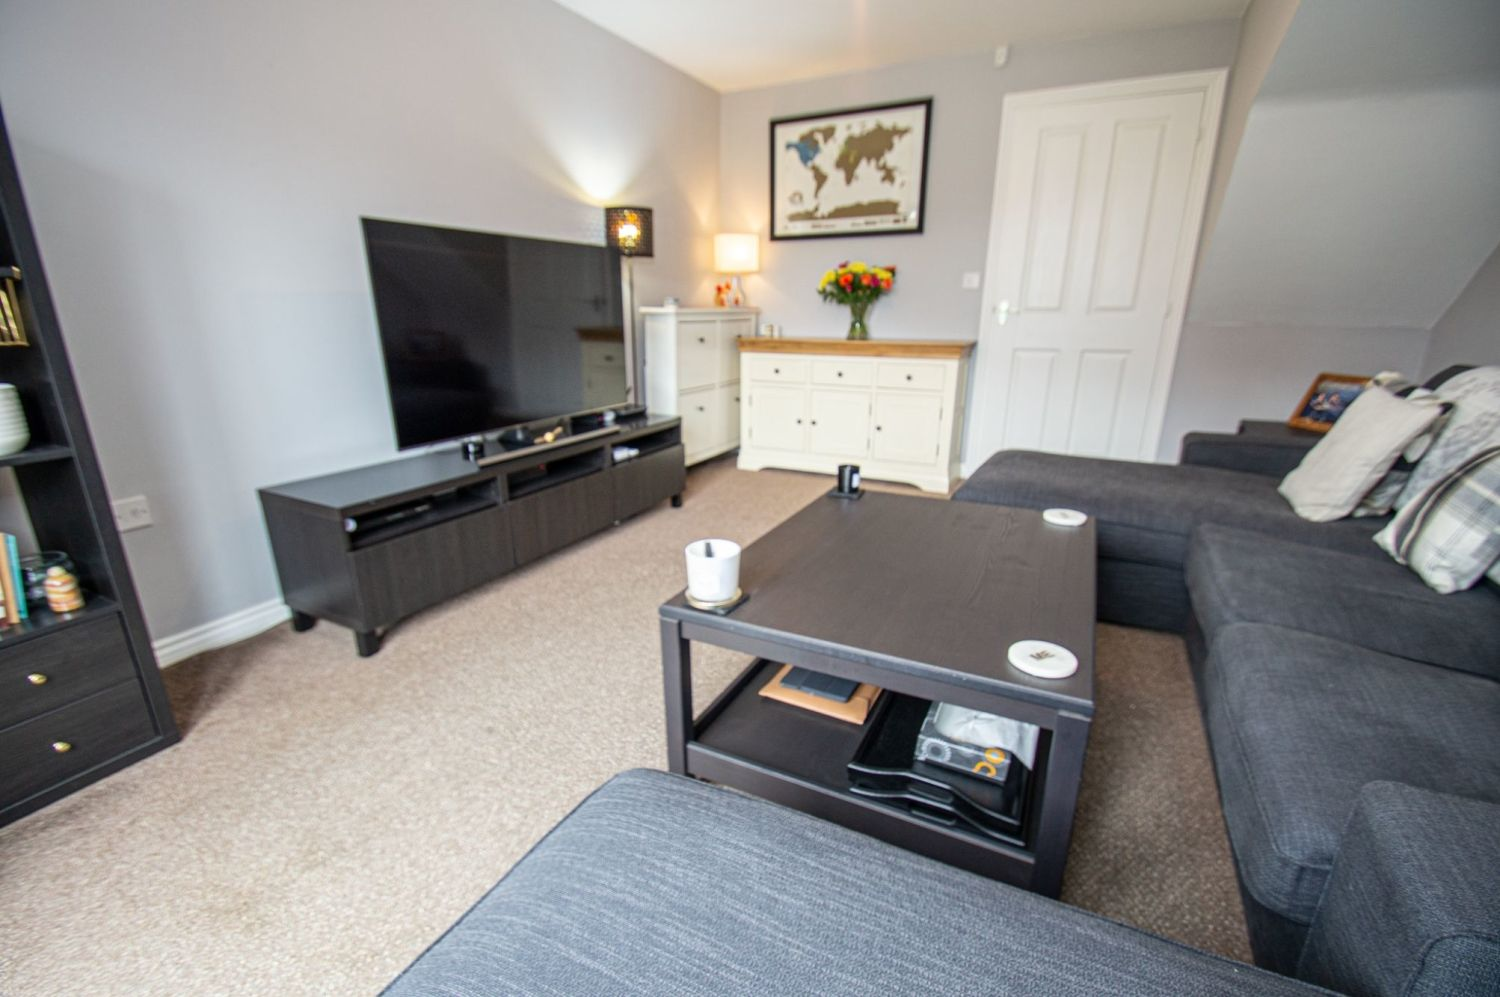 2 bed semi-detached for sale in Bobeche Place, Kingswinford  - Property Image 3